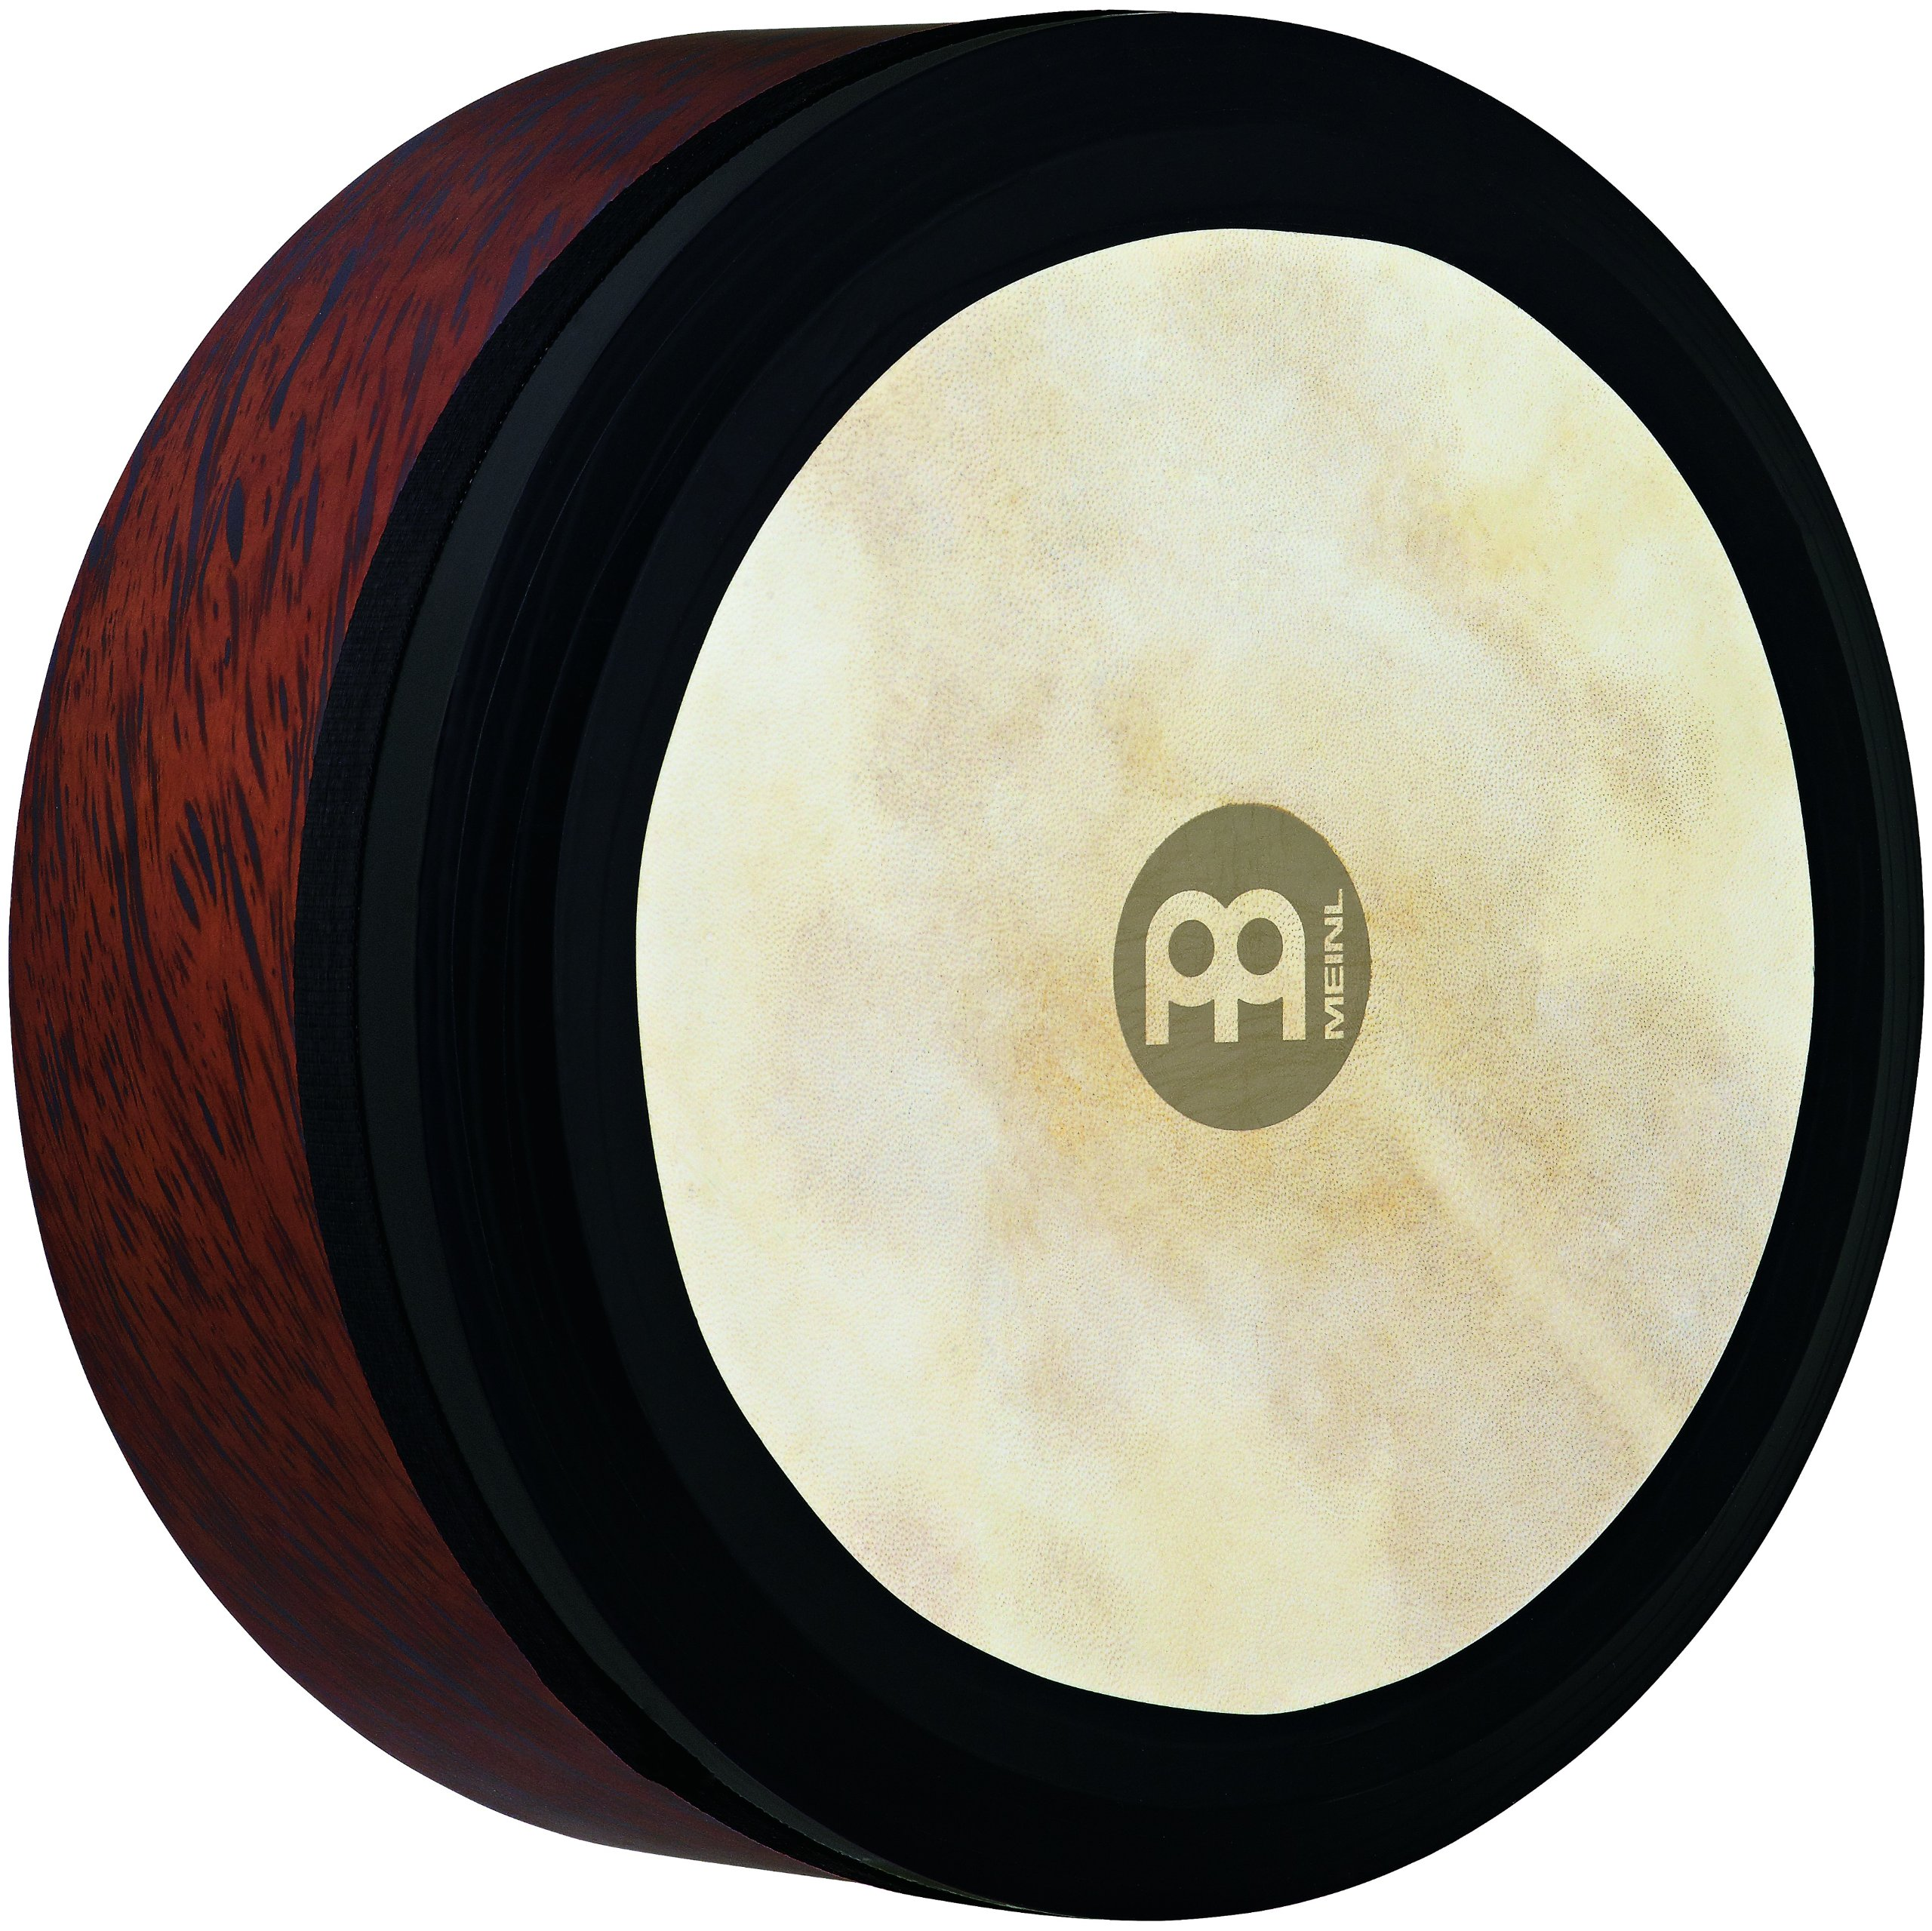 Meinl Percussion 14'' Frame Drum, Extra Deep Shell Irish Bodhran - NOT MADE IN CHINA - Goat Skin Head, Brown Burl, 2-YEAR WARRANTY, FD14IBO) by Meinl Percussion